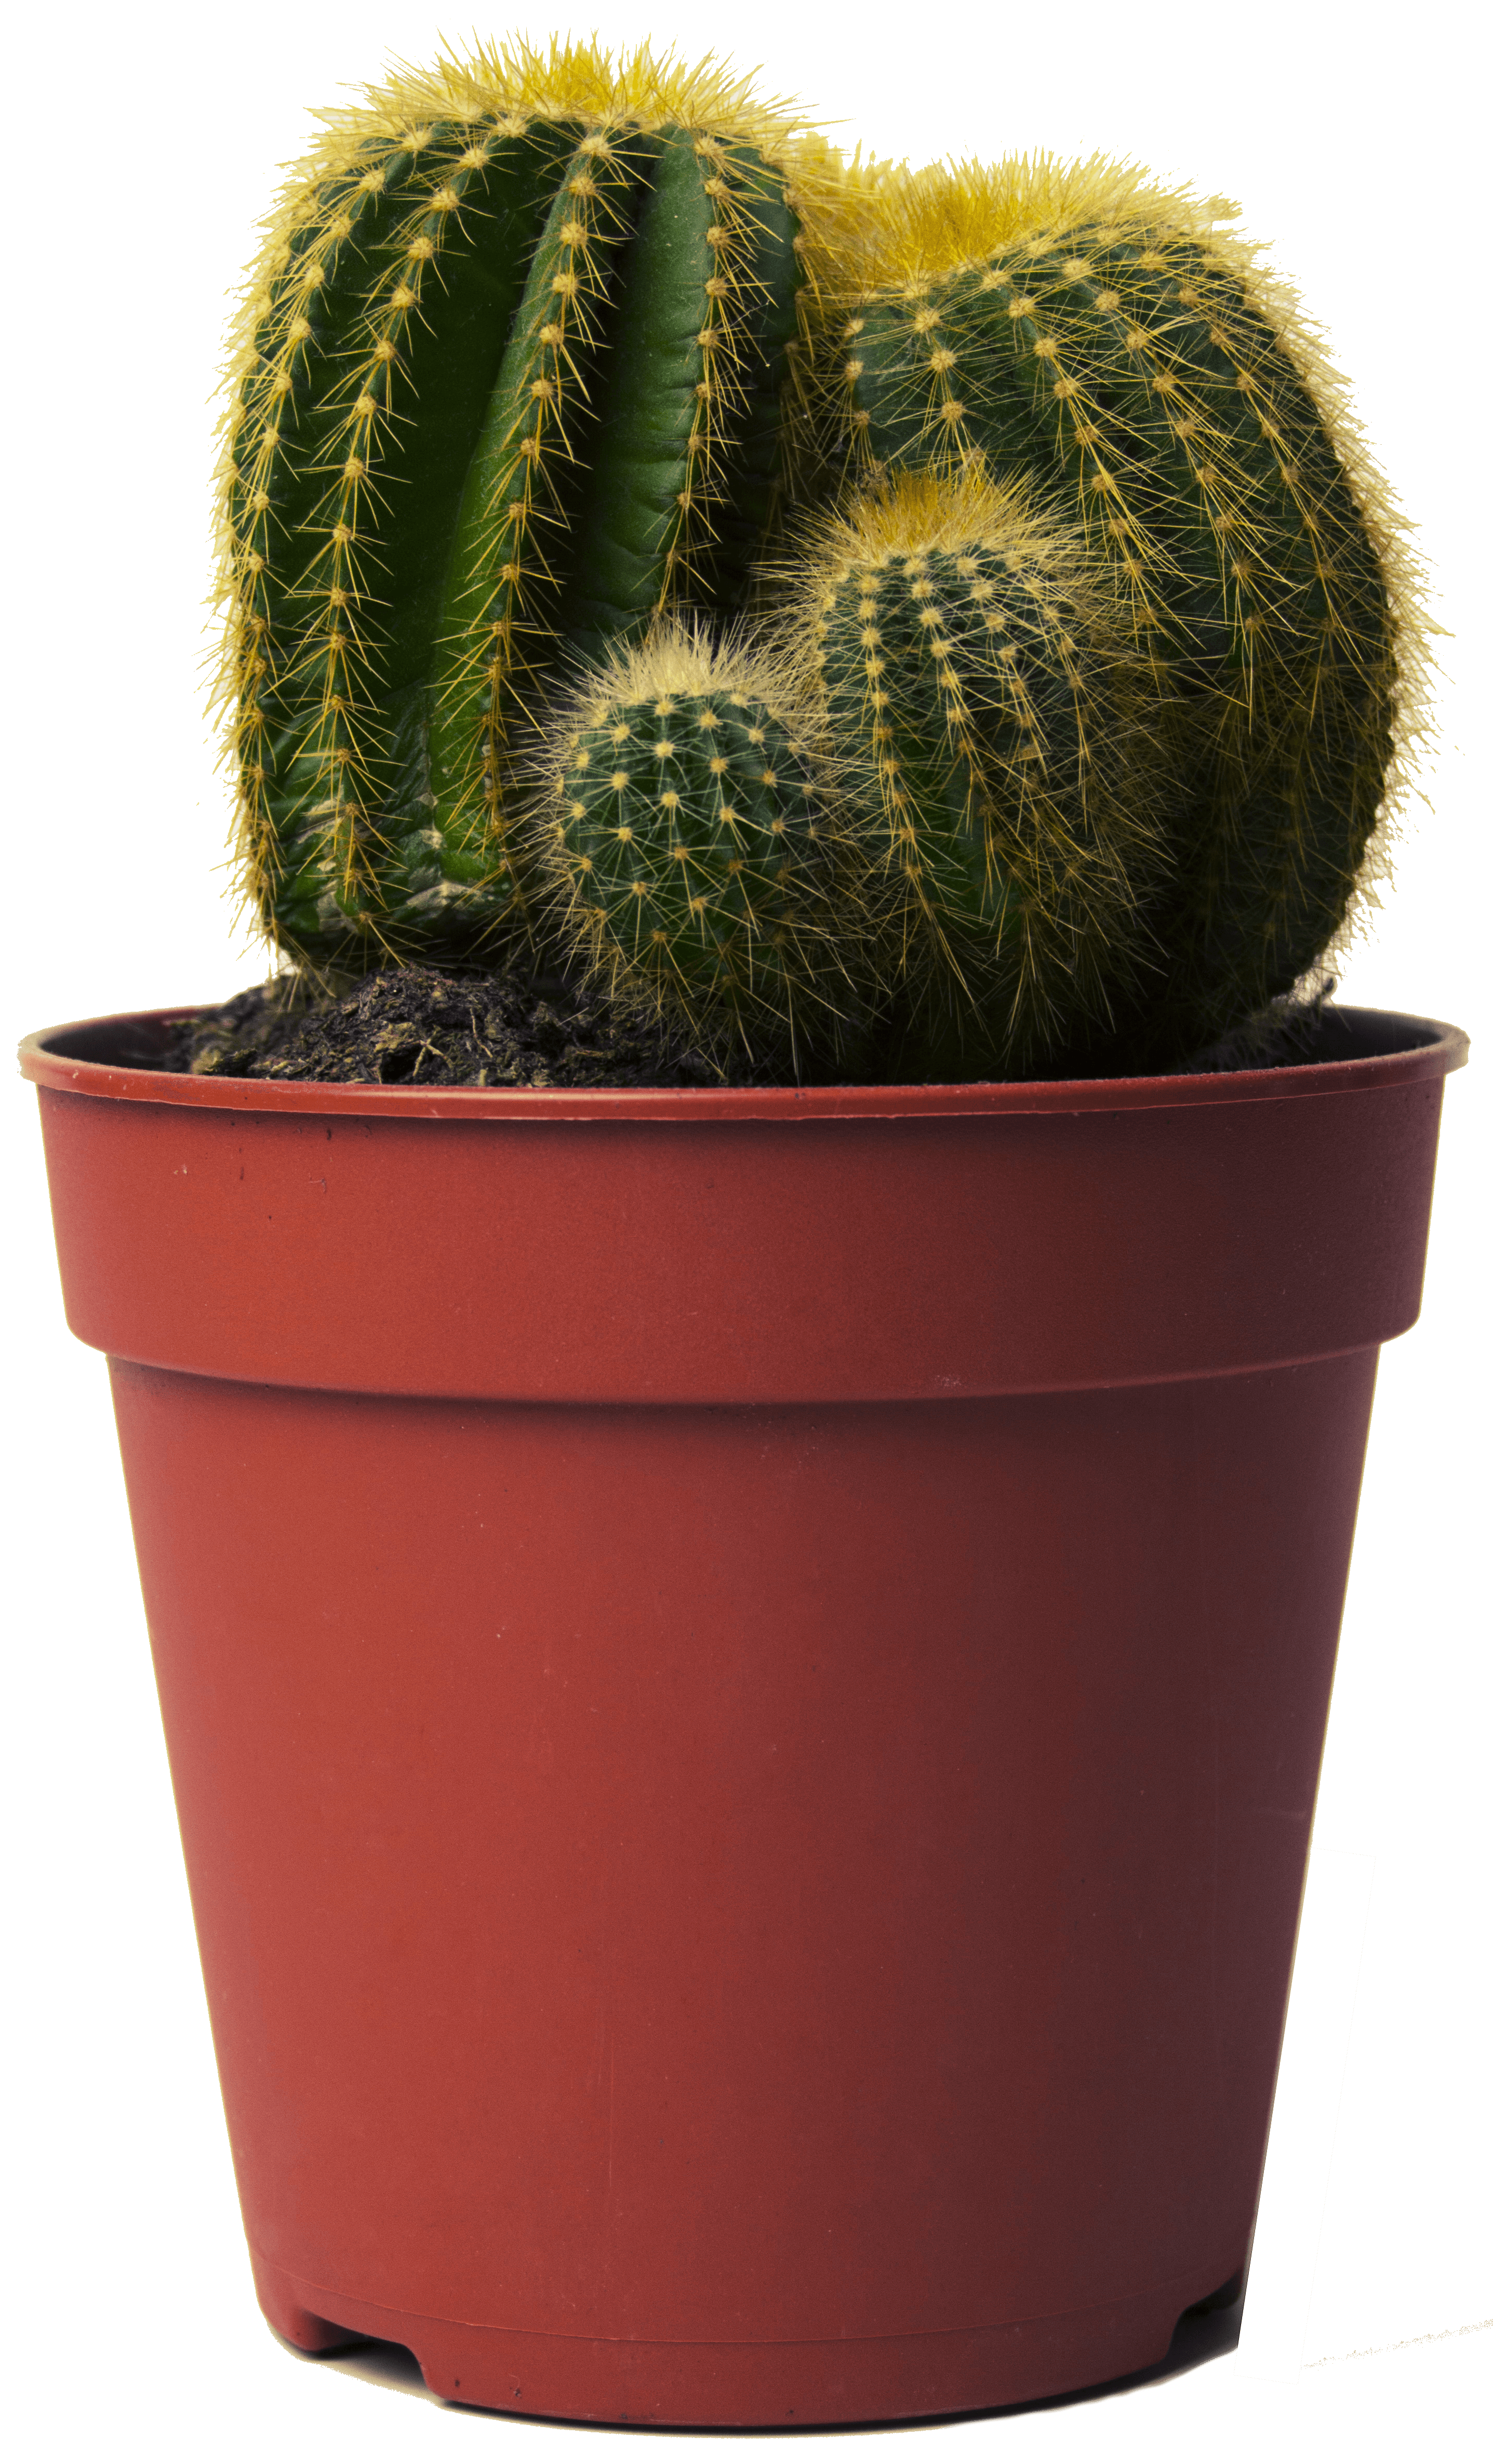 cactus, tips advice growing cacti sproutabl #22164